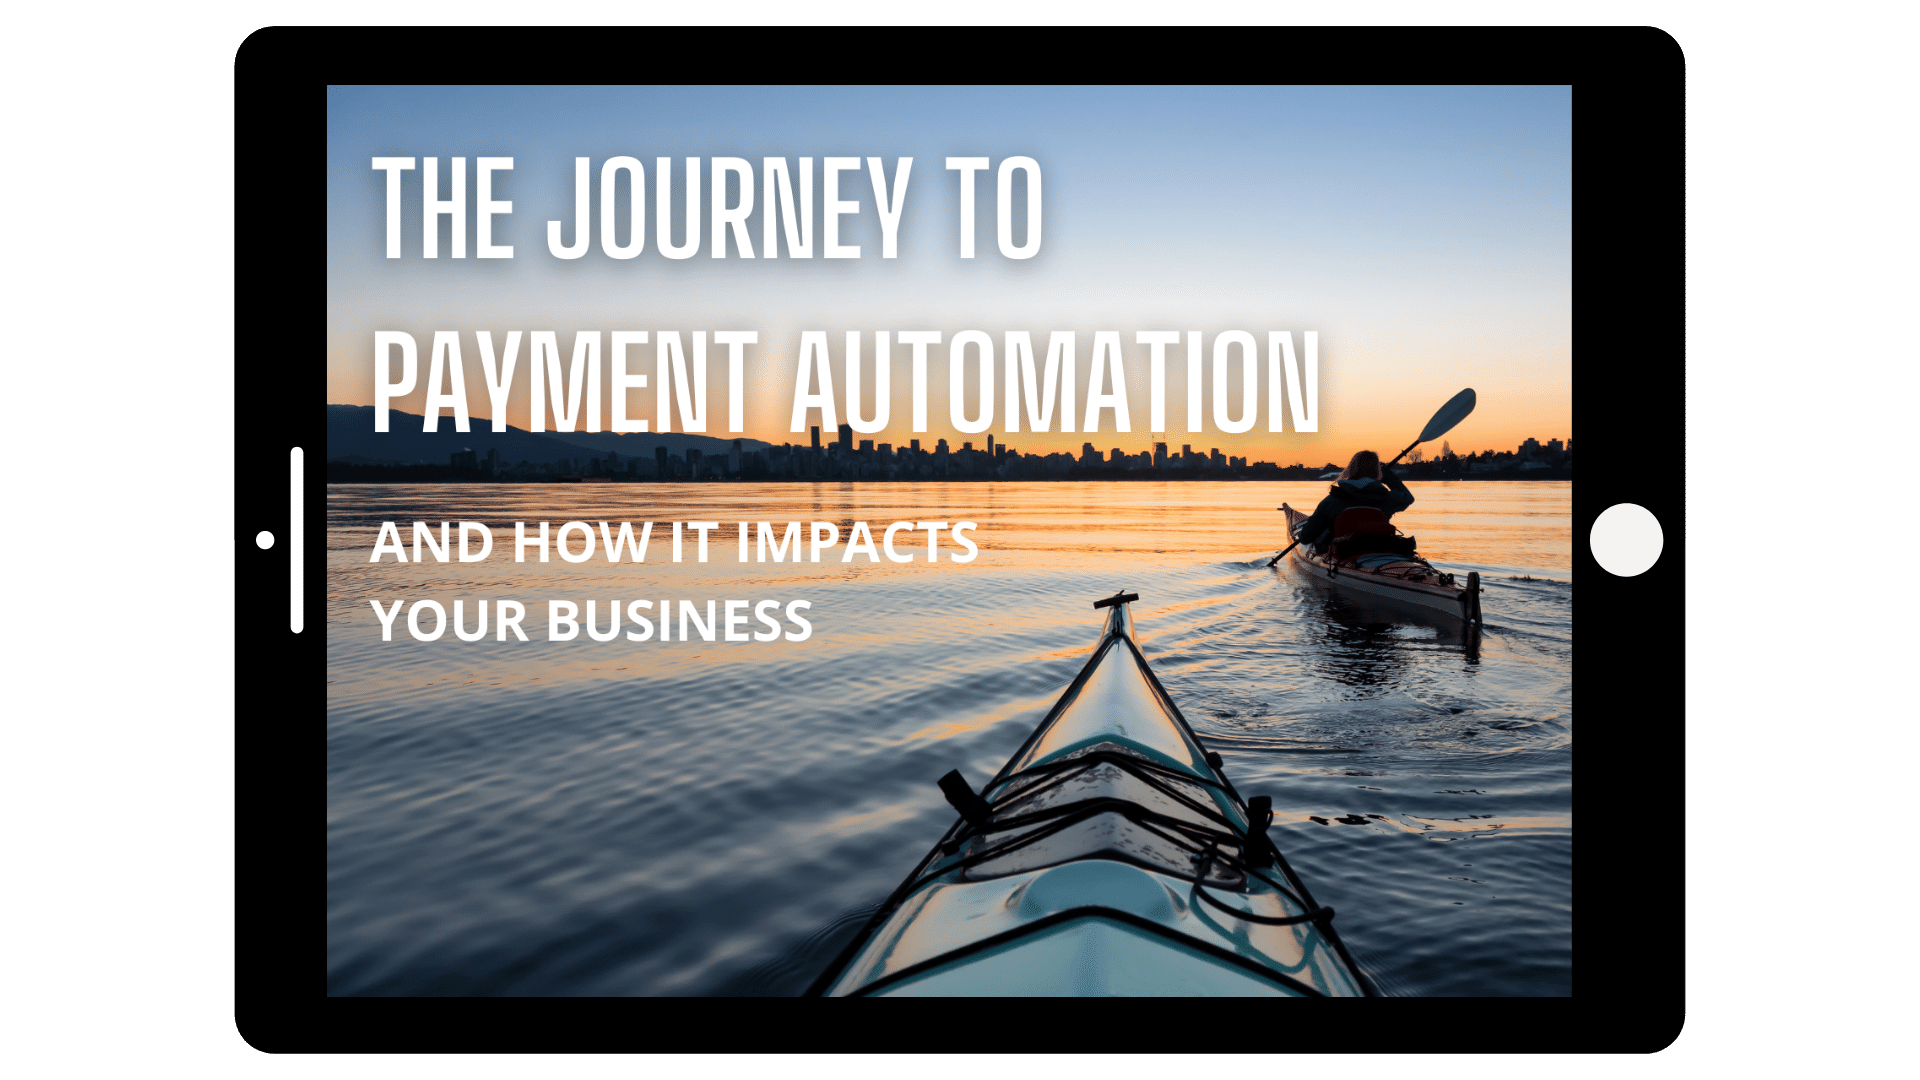 The Journey to Payment Automation Tablet